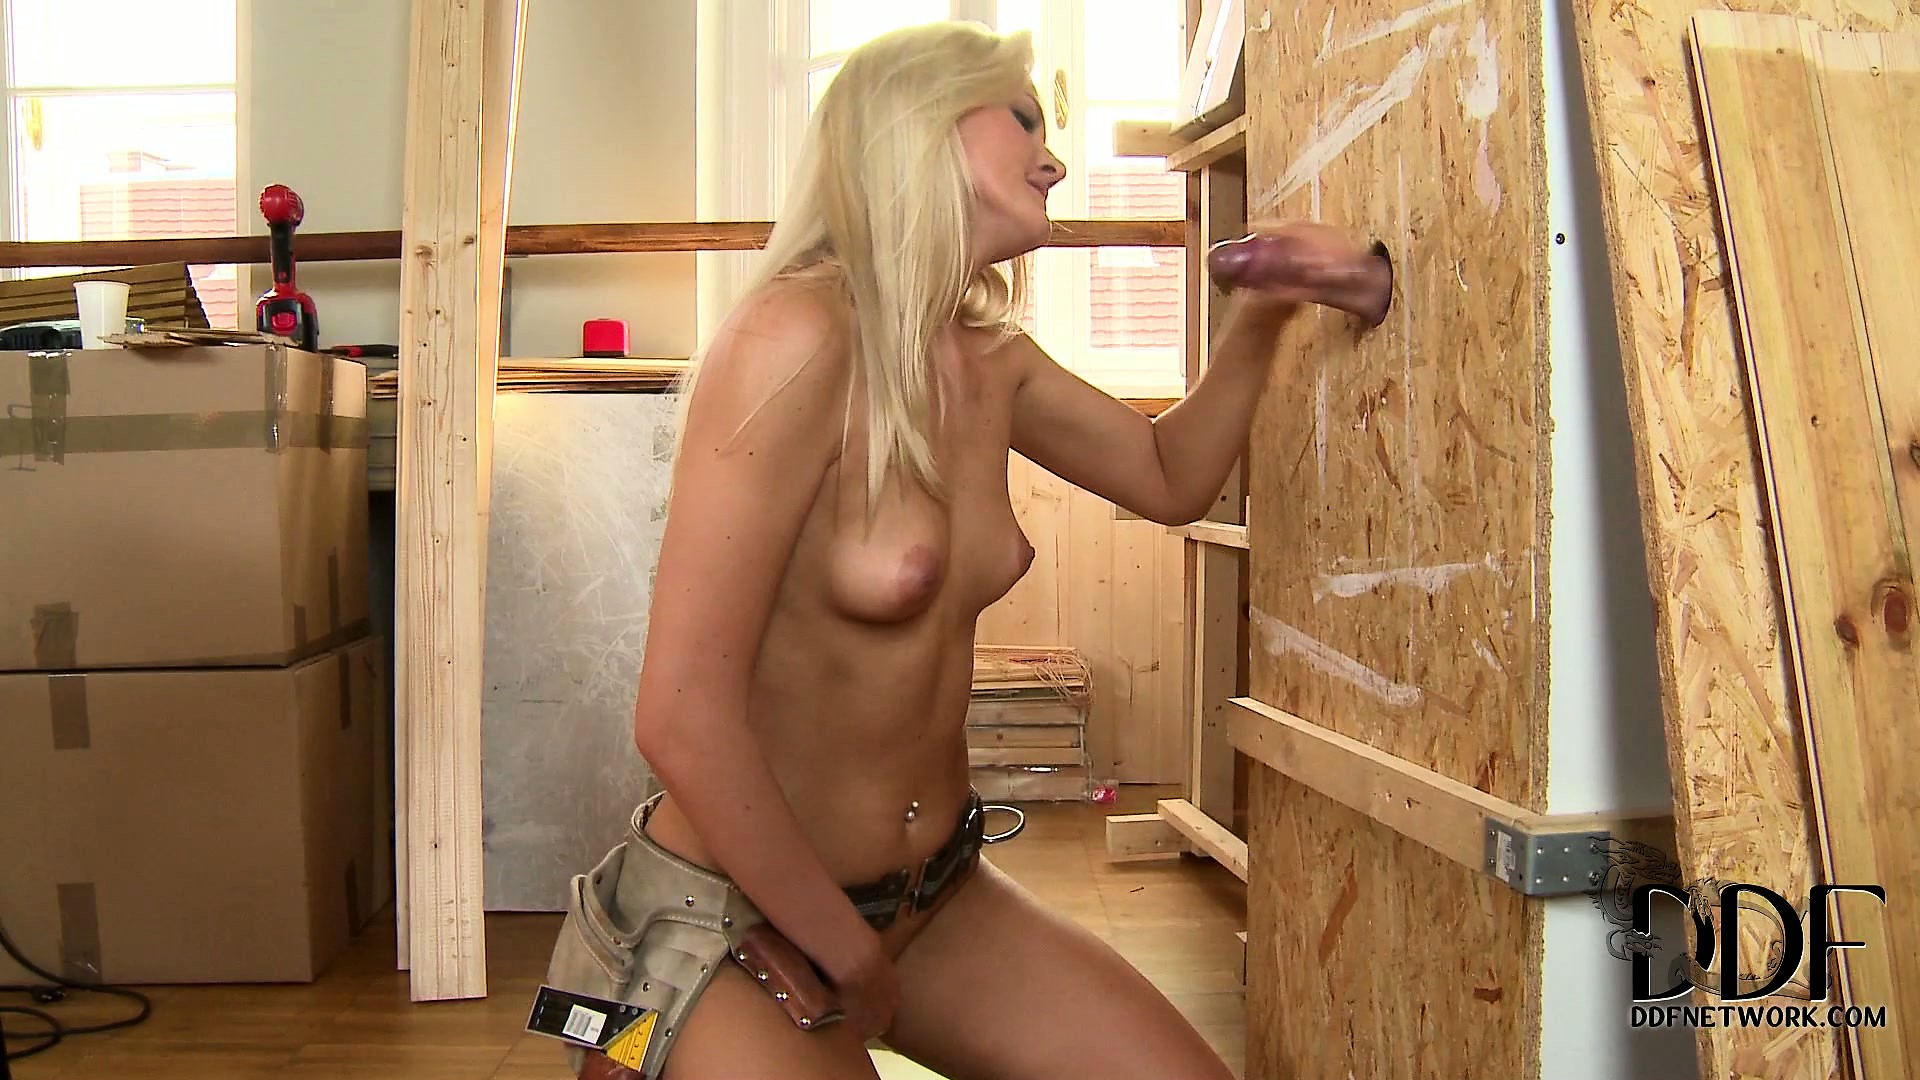 Porn Tube of A Glory Hole With A Big Dick Is Exactly What She Needs In Her Renovated House